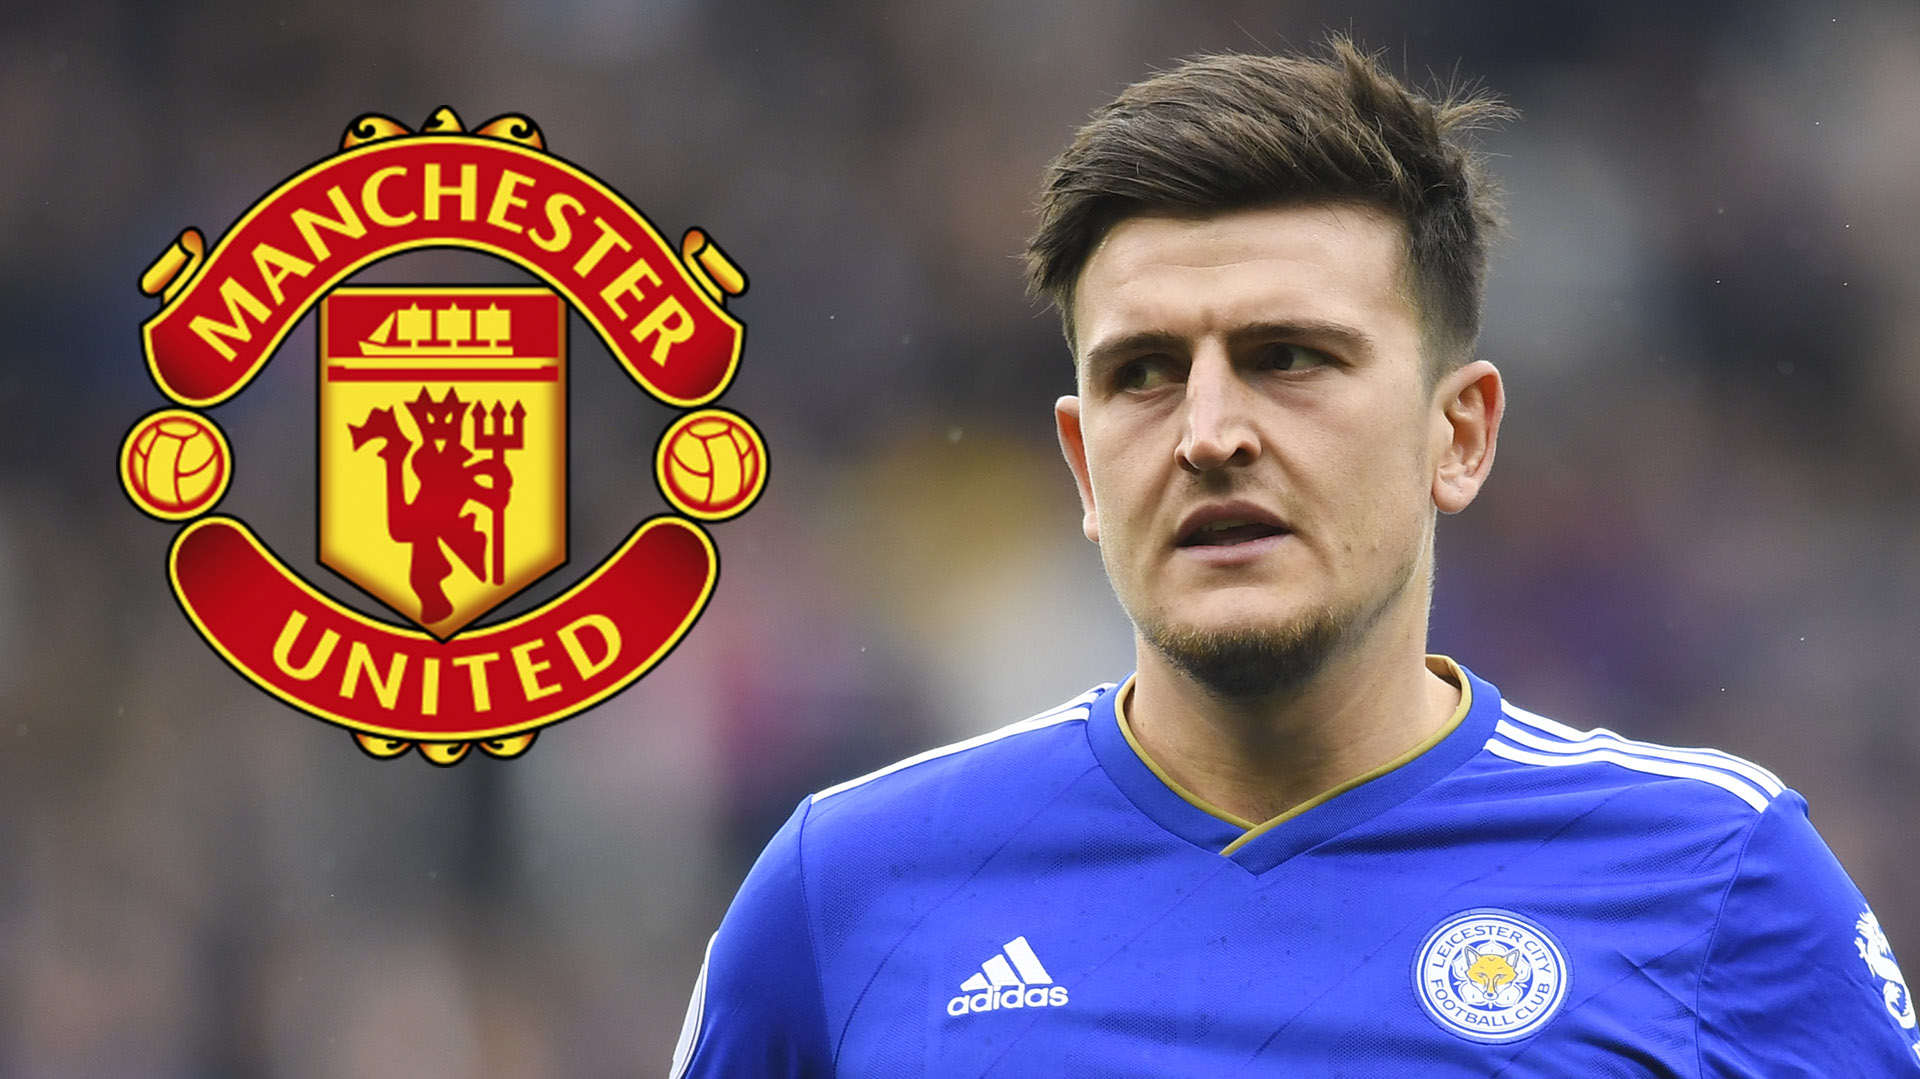 Mercato - Leicester : Brendan Rodgers confirme un accord avec Manchester United pour Harry Maguire